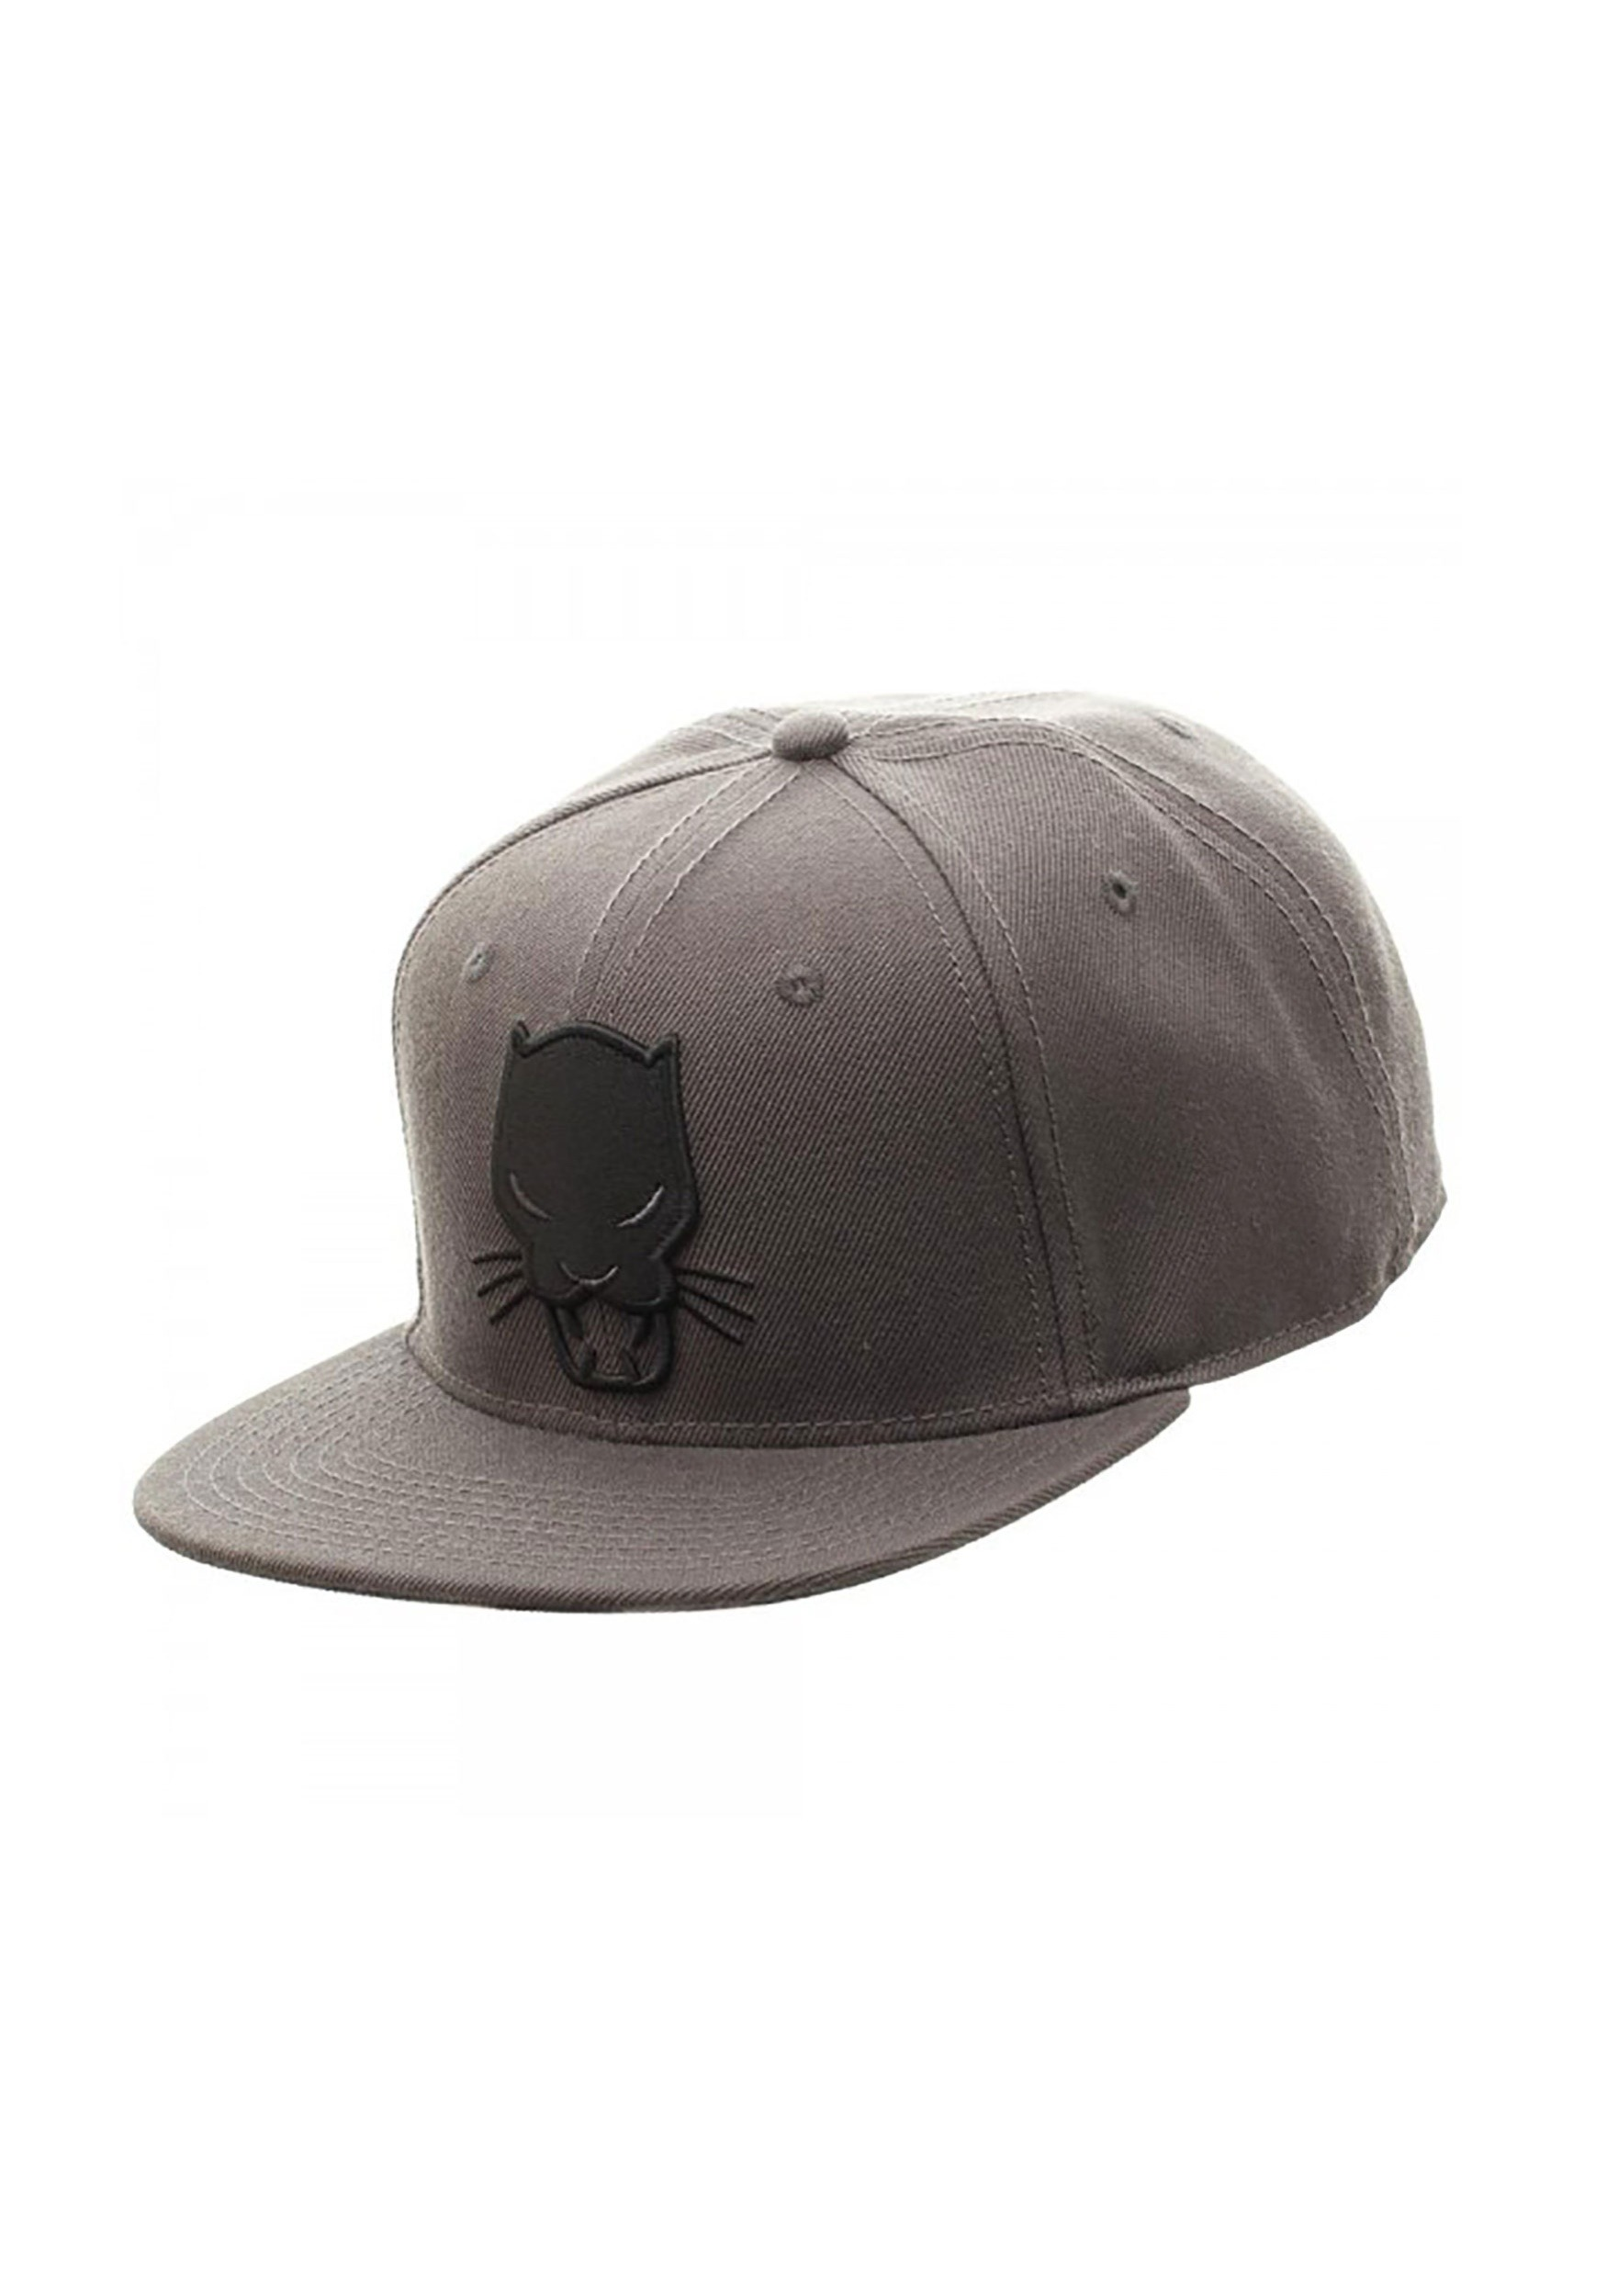 ... coupon for black panther snap back hat 53864 a5266 1e224d09d18f